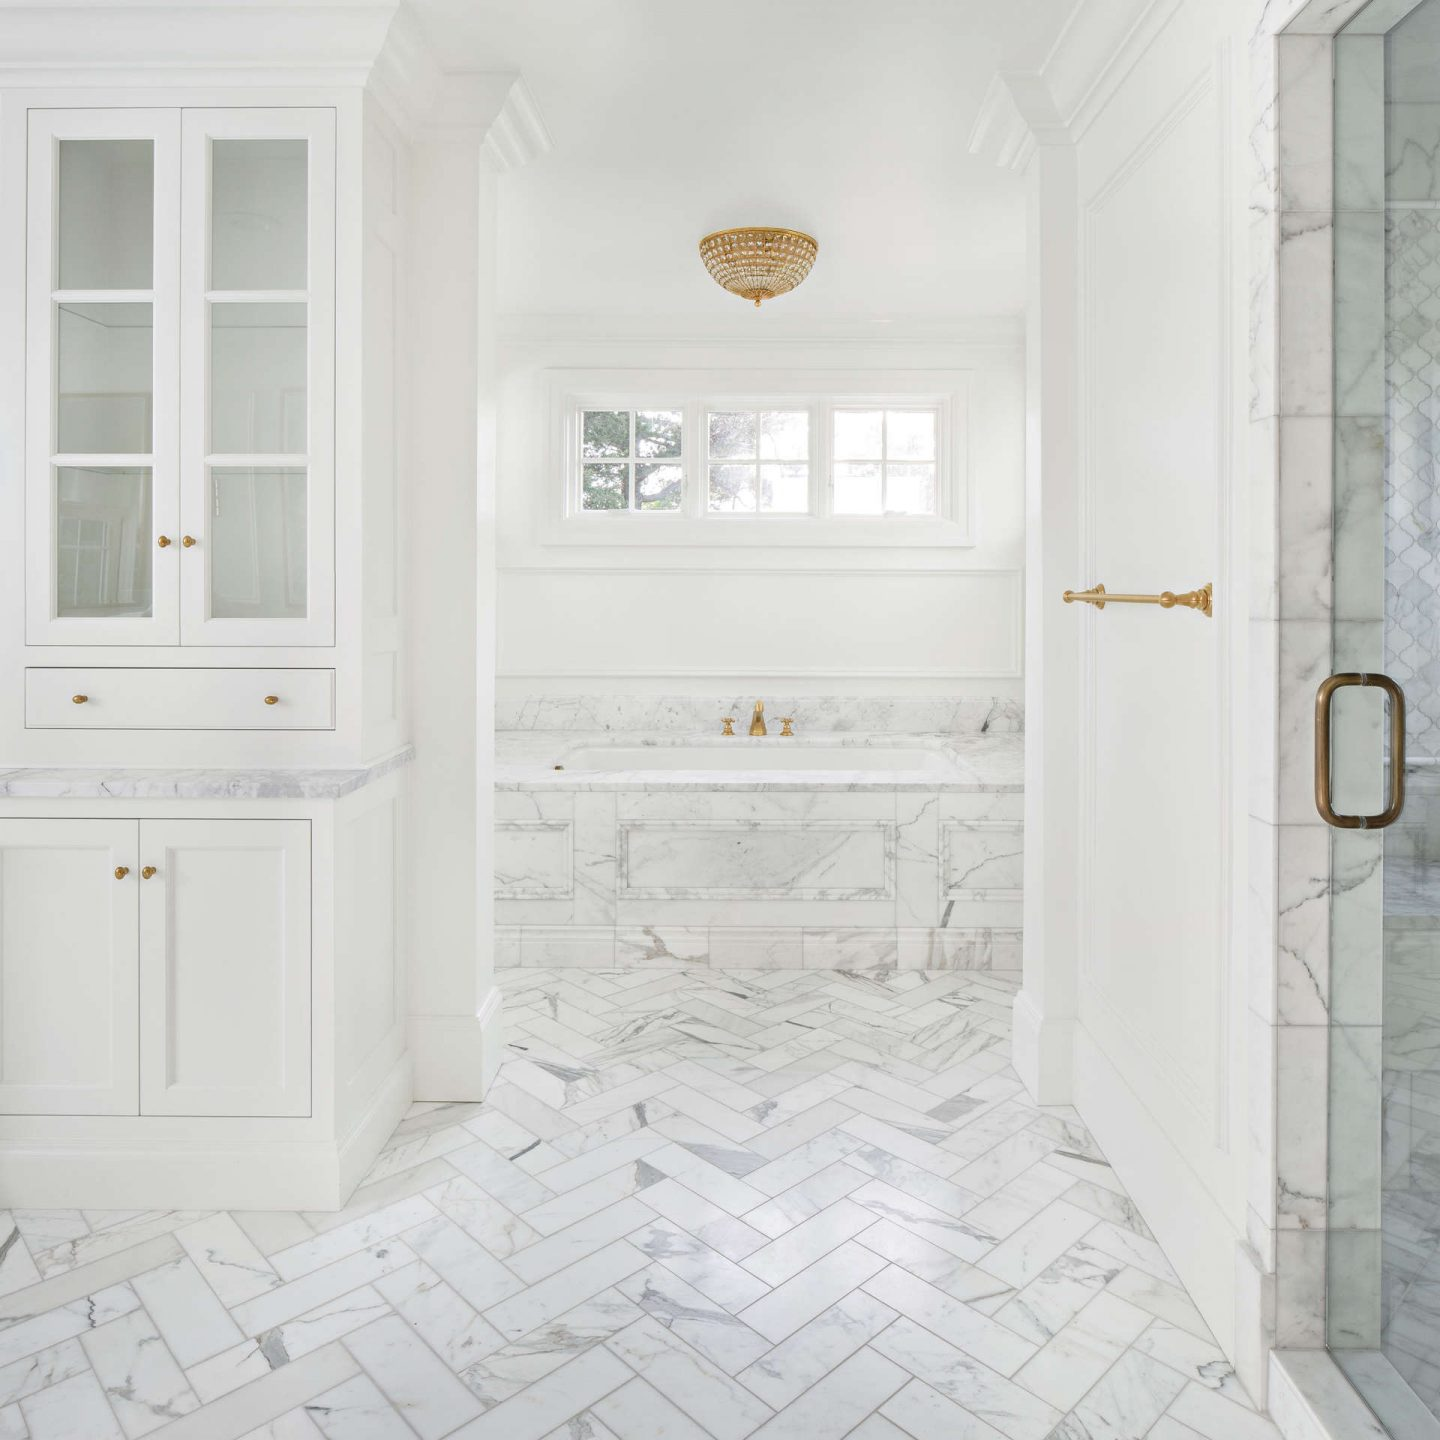 Calacatta marble tile and tub surround in a luxurious white classic bathroom. #thefoxgroup #bathroomdesign #calacattamarble